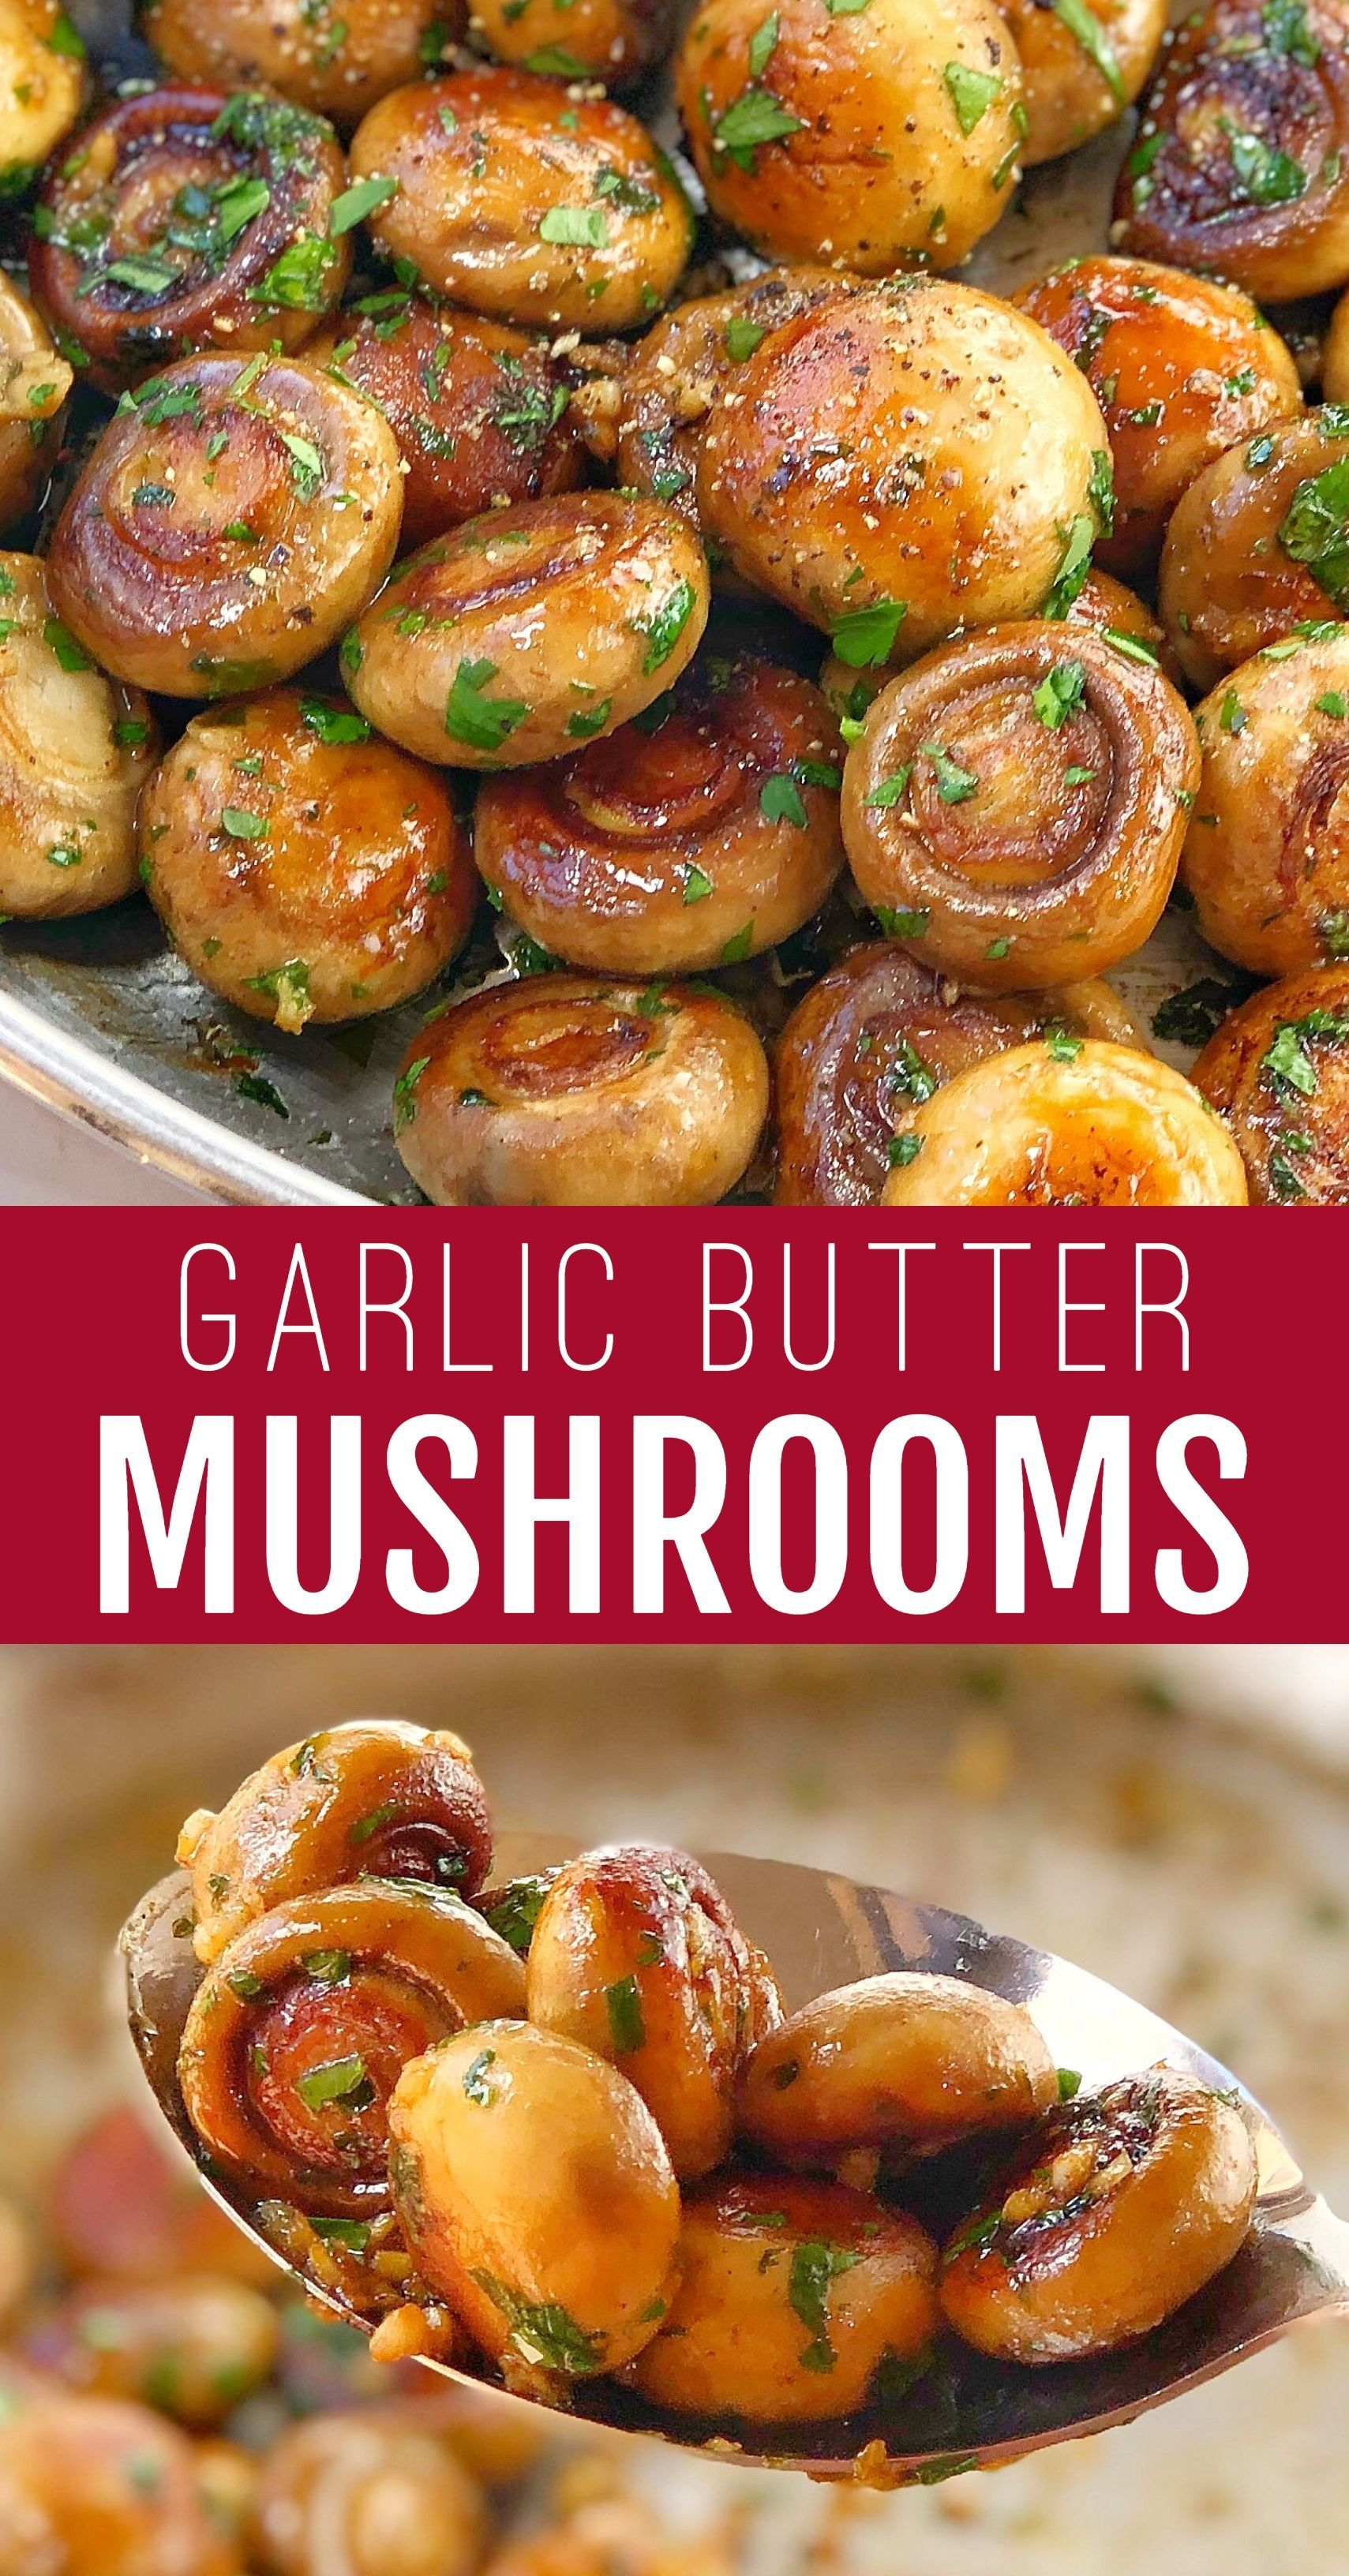 Garlic Mushrooms sauteed in butter, a great vegan side dish! So easy, just fried on the stove. A great accompaniment for steak or pork chops. #chefnotrequired #sauteedmushrooms #garlic #chickensidedishes